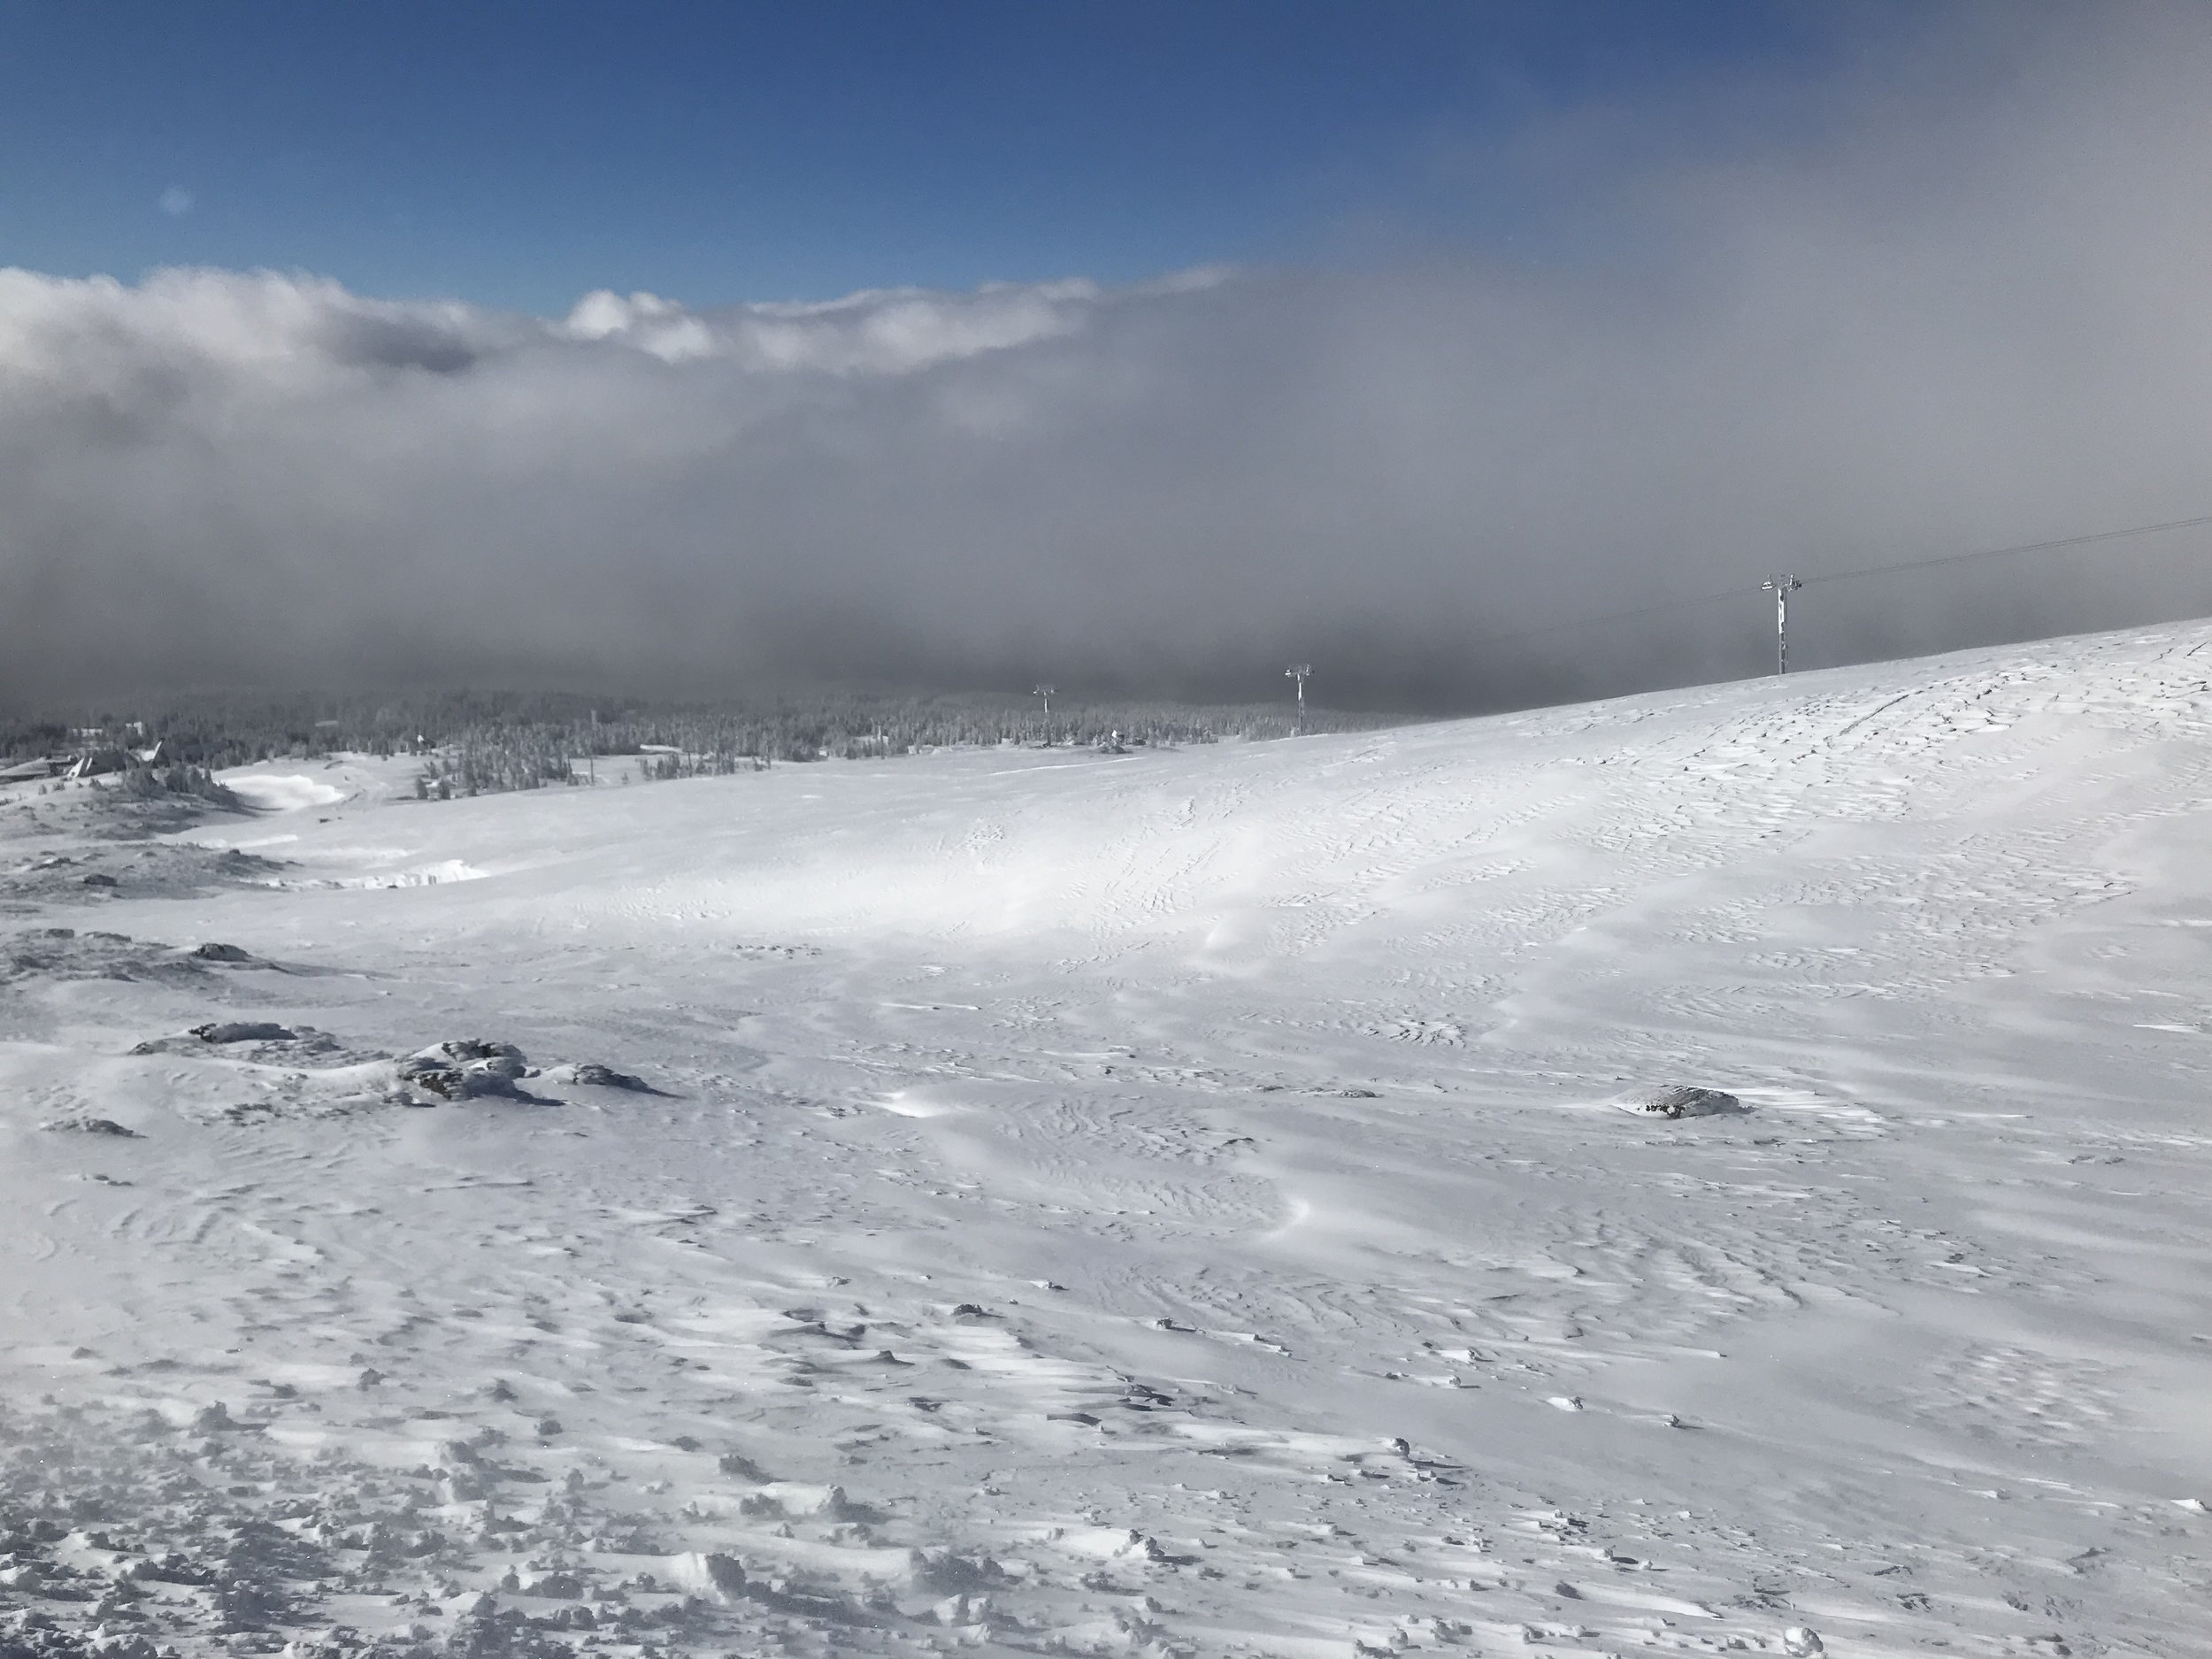 """Another look down the mountain from the """"front porch"""" of the Silcox...this time the sun has come up a bit more and we were getting ready to depart on skis and boards. You can see Timberline Lodge down in the distance. Image Courtesy: Dan Meyers"""